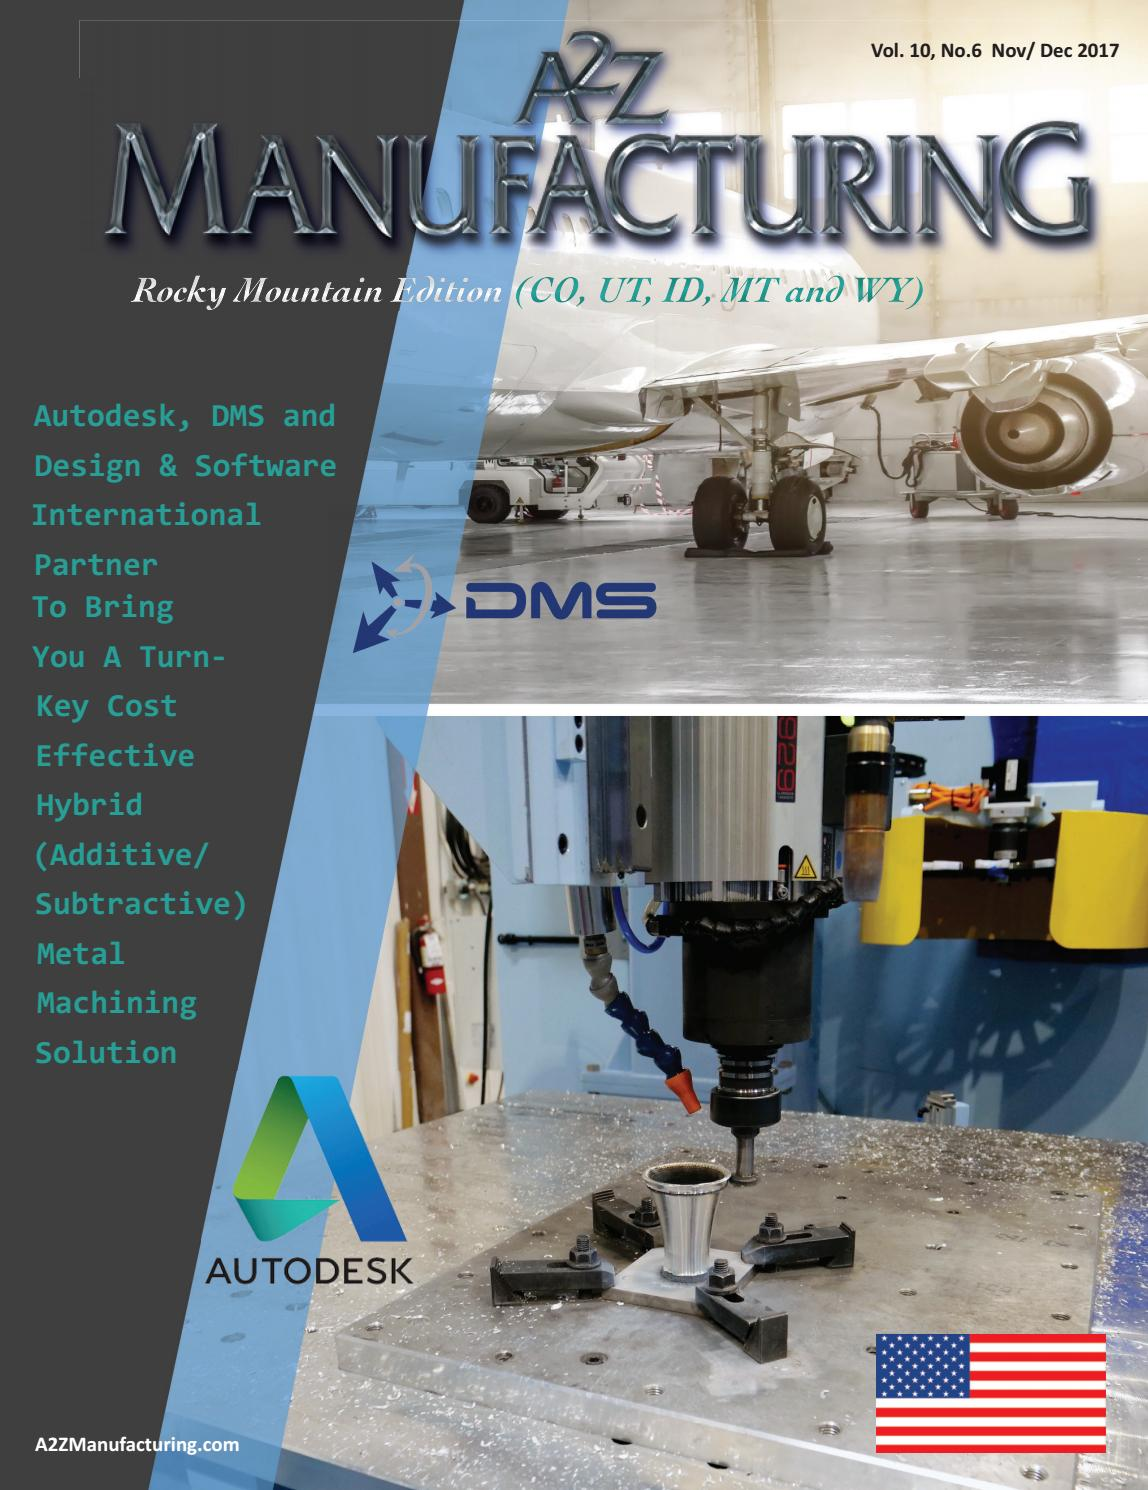 RM Dec a2z Manufacturing 2017 by A2Z Manufacturing Magazines - issuu